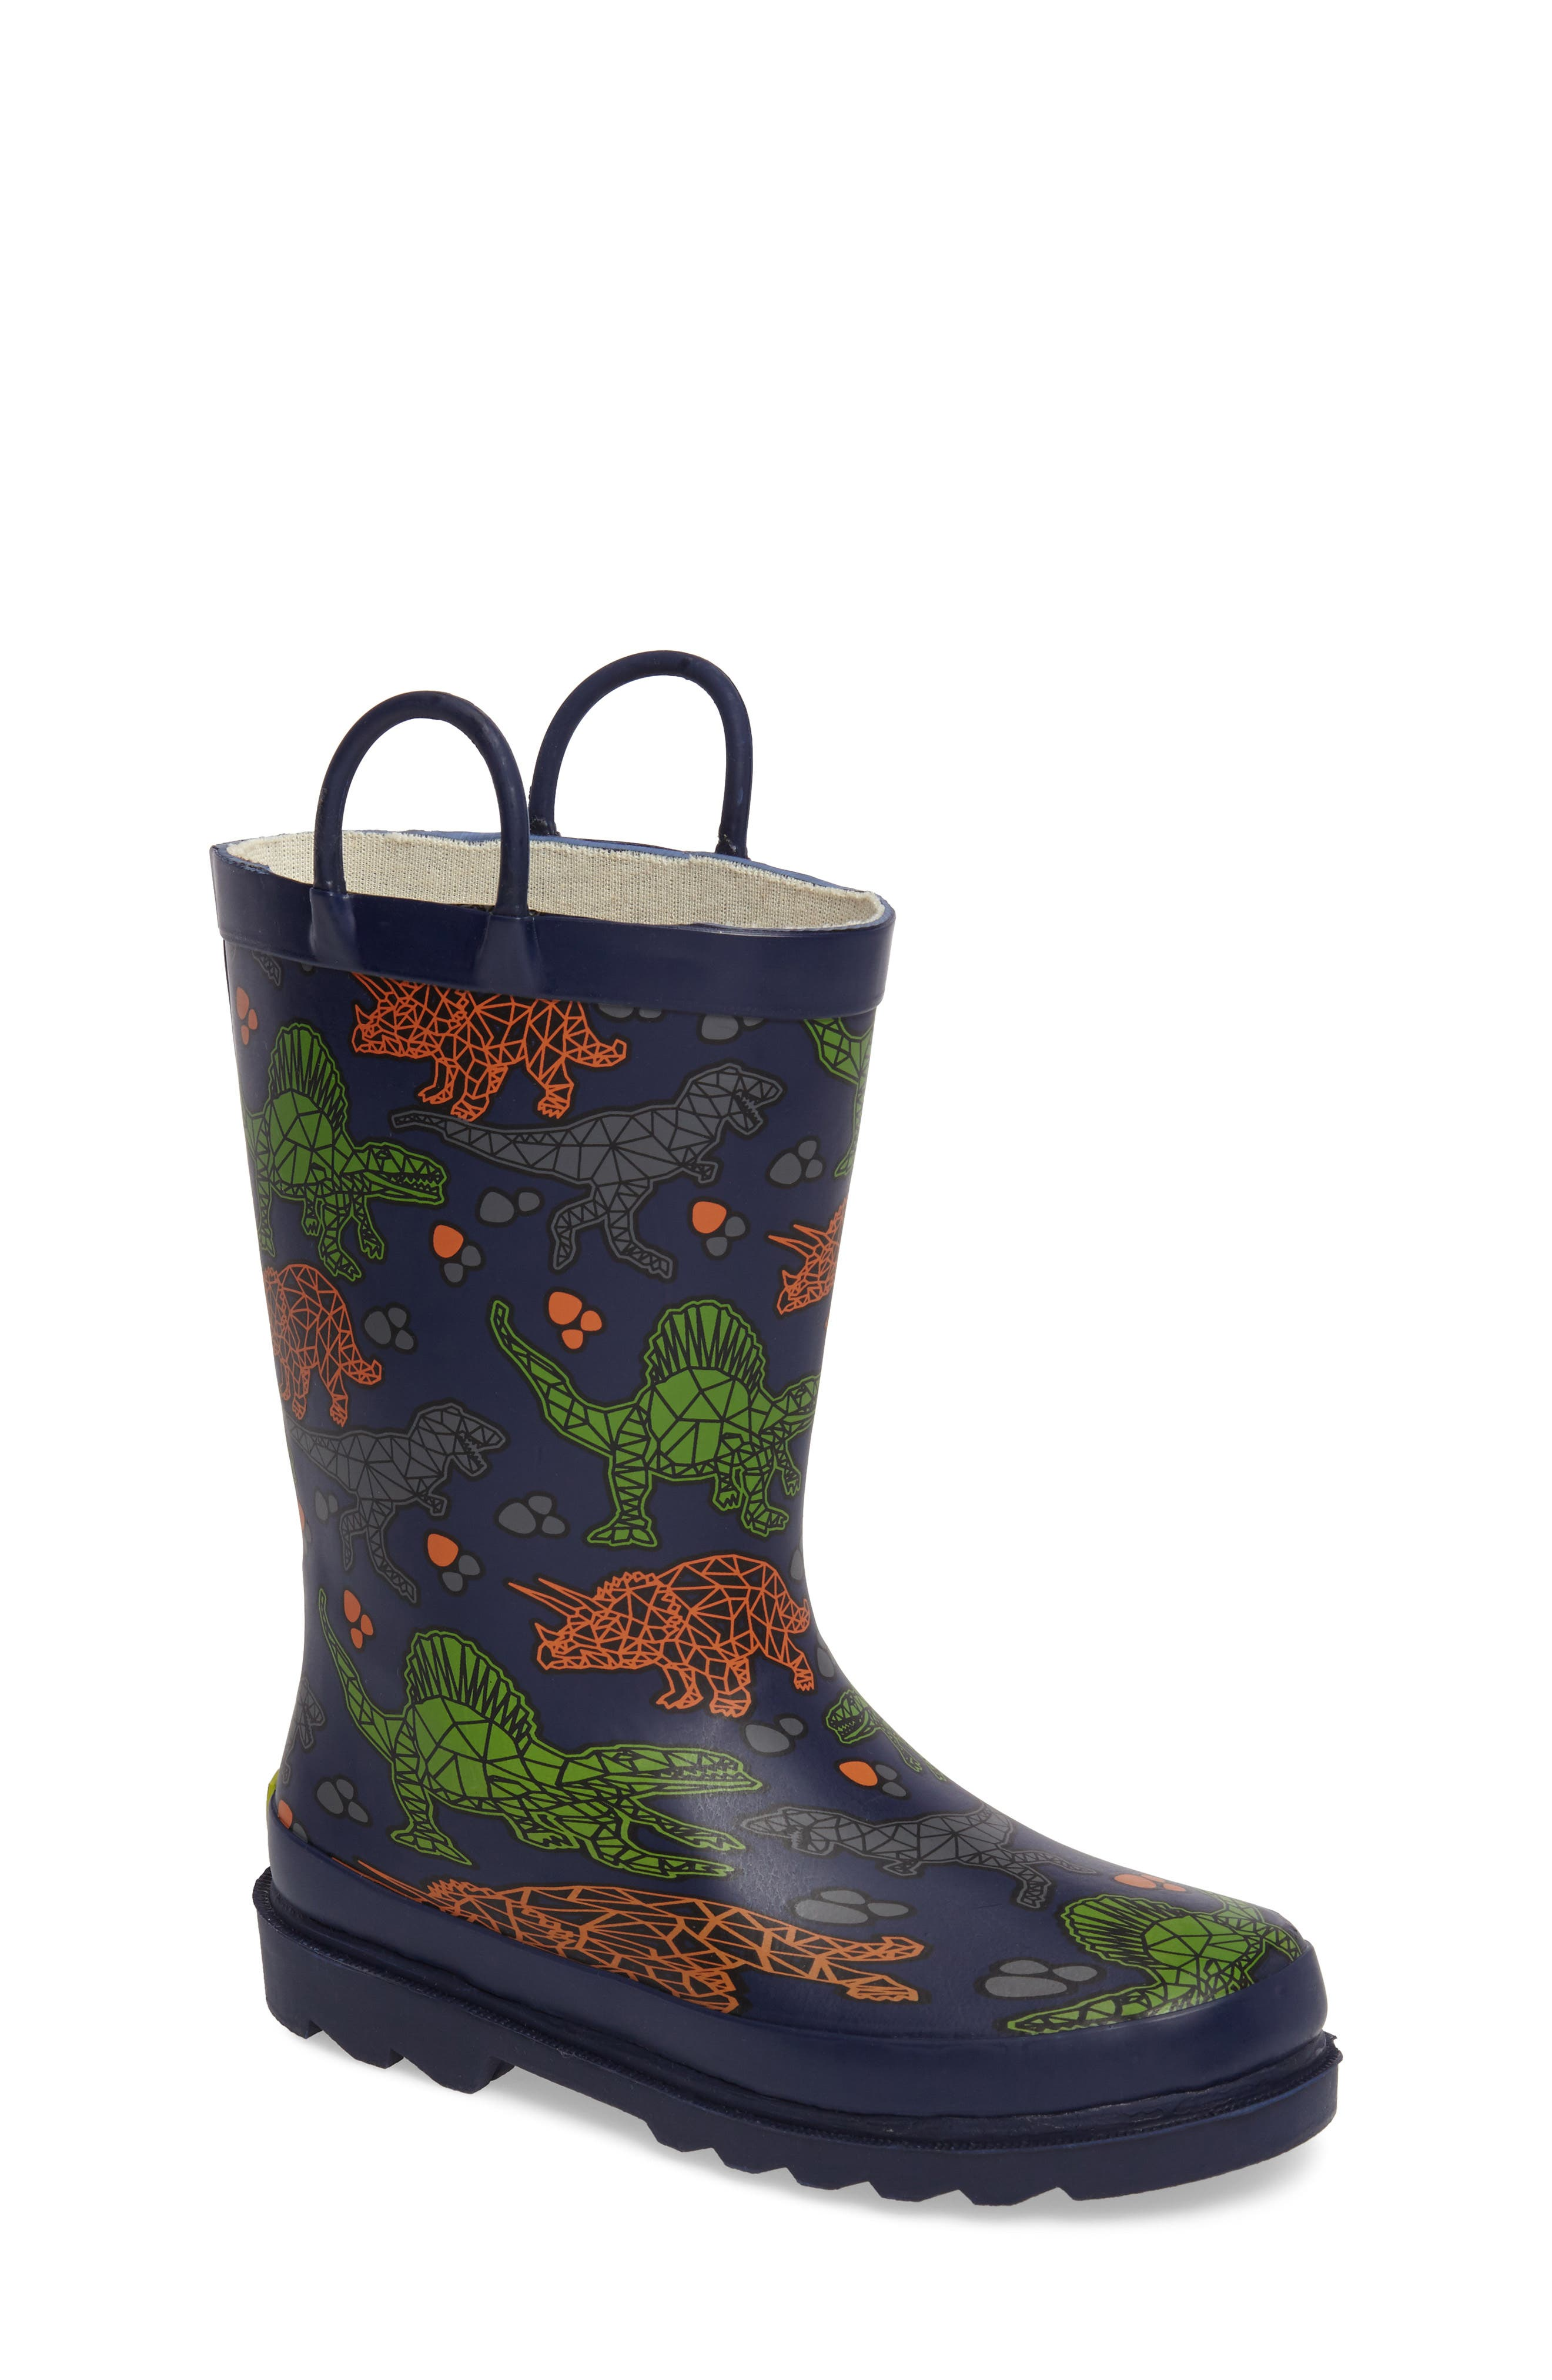 WESTERN CHIEF Dino Facets Rain Boot